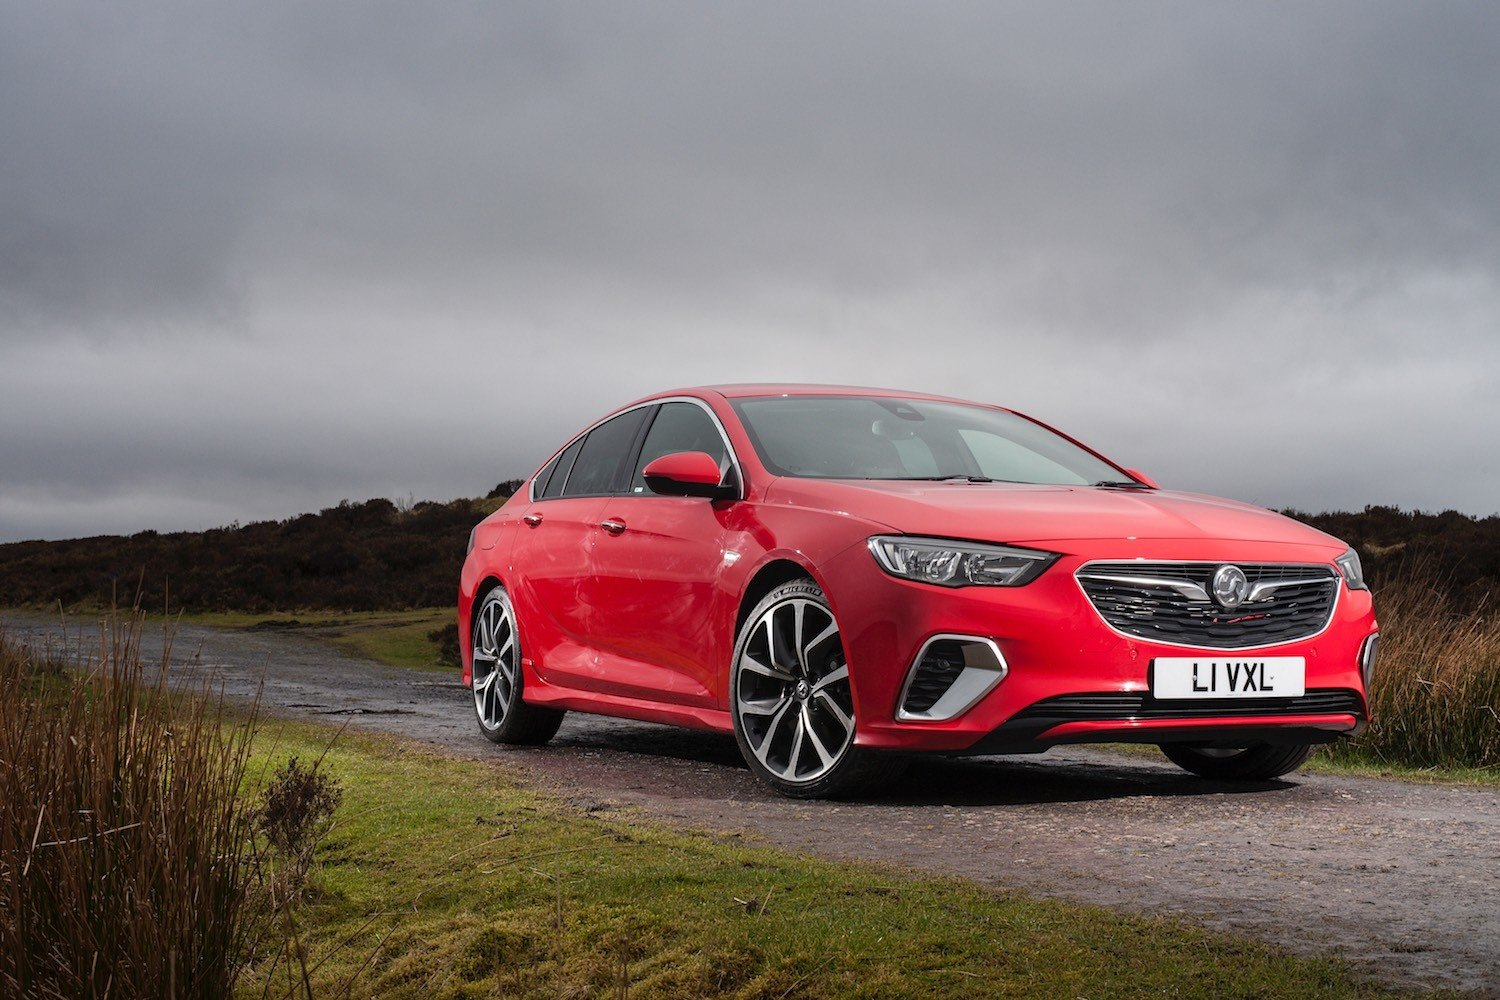 Vauxhall Insignia 2018 Drive Co Uk Reviewed The 2018 Vauxhall Insignia Gsi Biturbo